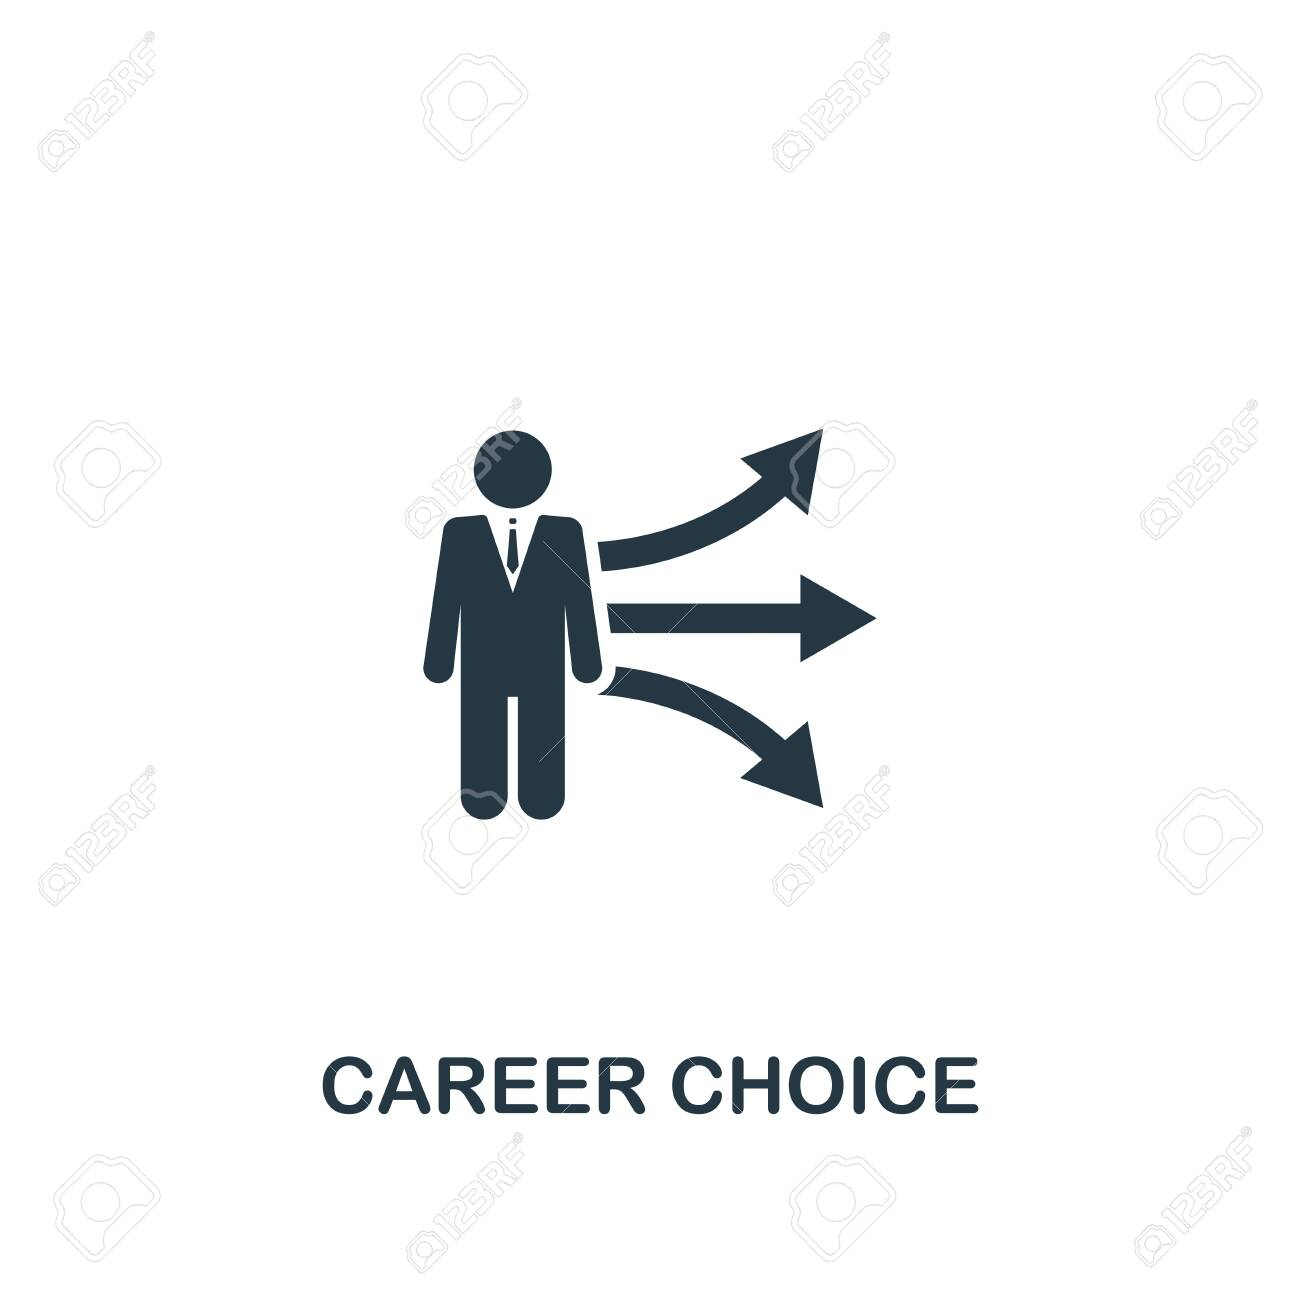 Career Choice Icon Creative Element Design From Productivity Royalty Free Cliparts Vectors And Stock Illustration Image 123884946